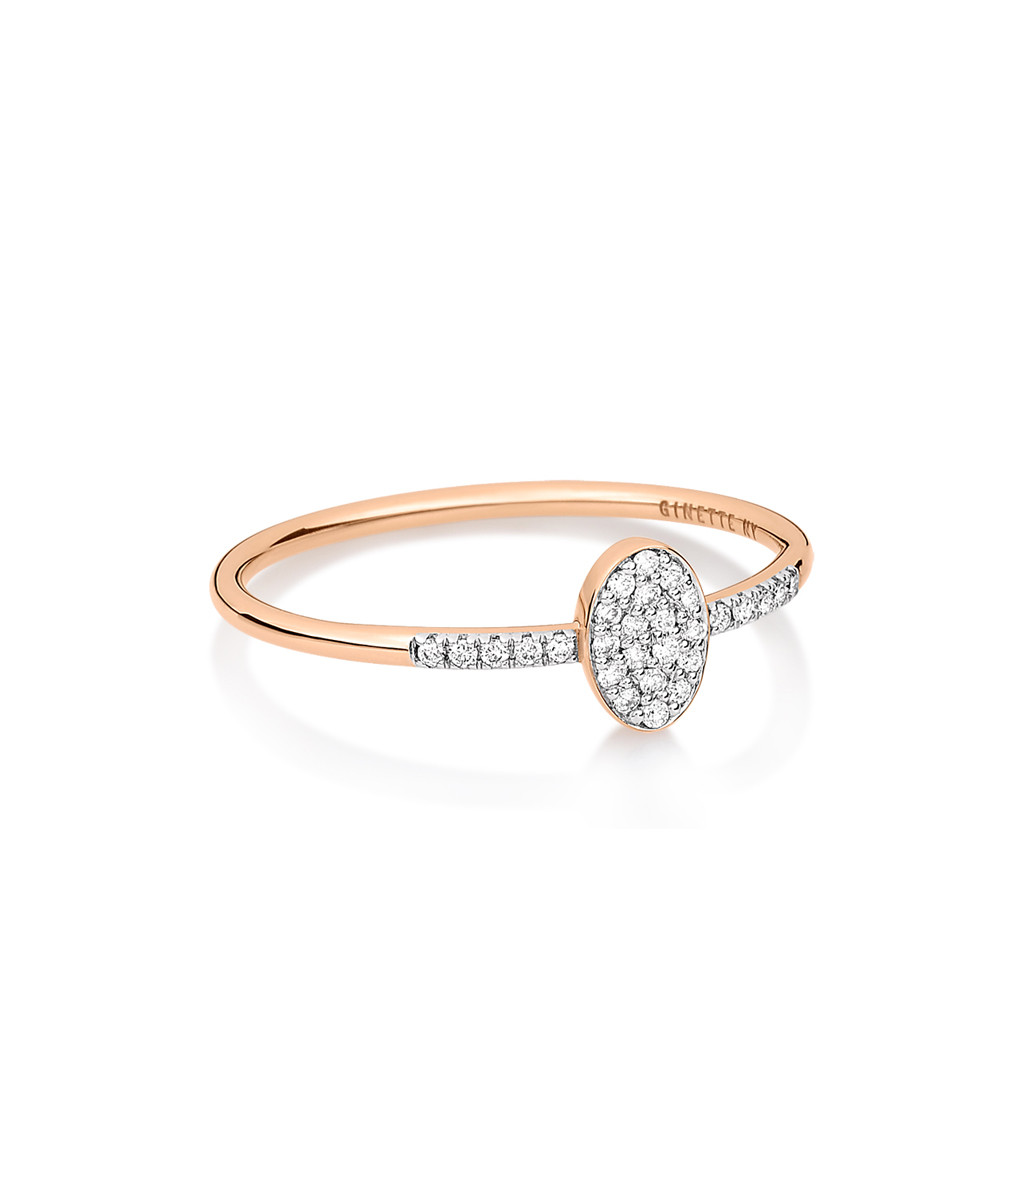 GINETTE_NY - Bague Sequin Or Rose Diamants